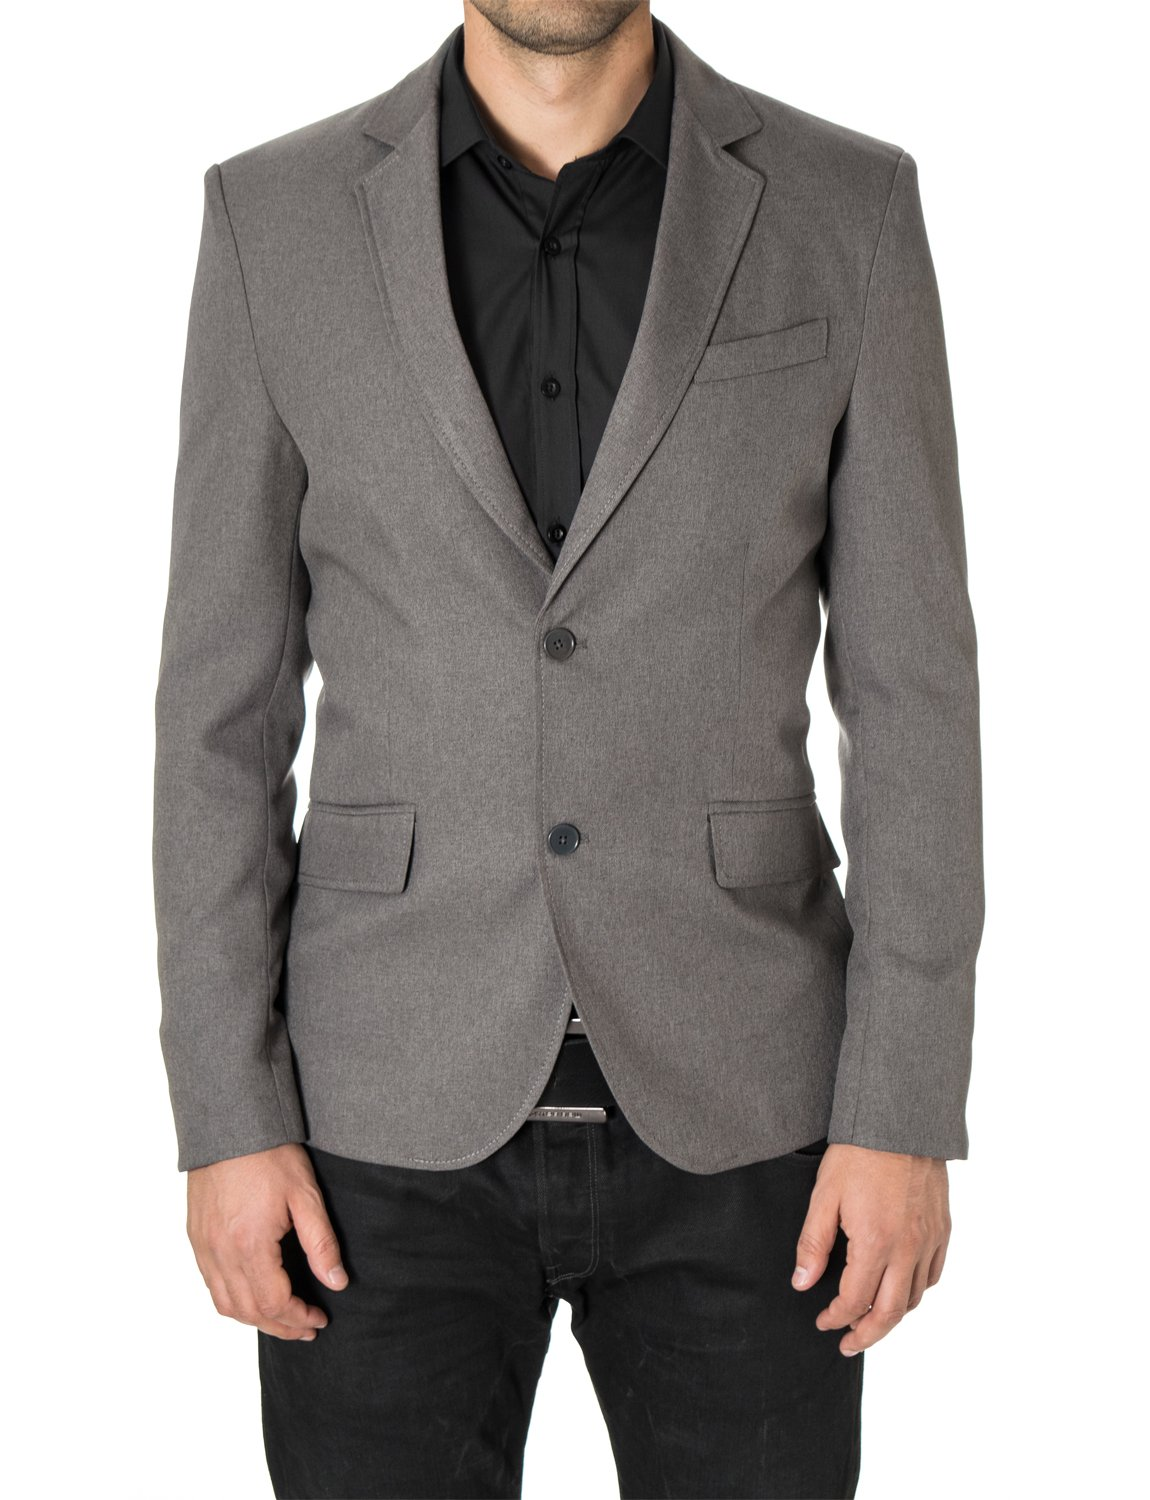 MODERNO Blazers for Men Slim Fit Sport Coat 2 Buttons by (MOD14514B) Gray US XL